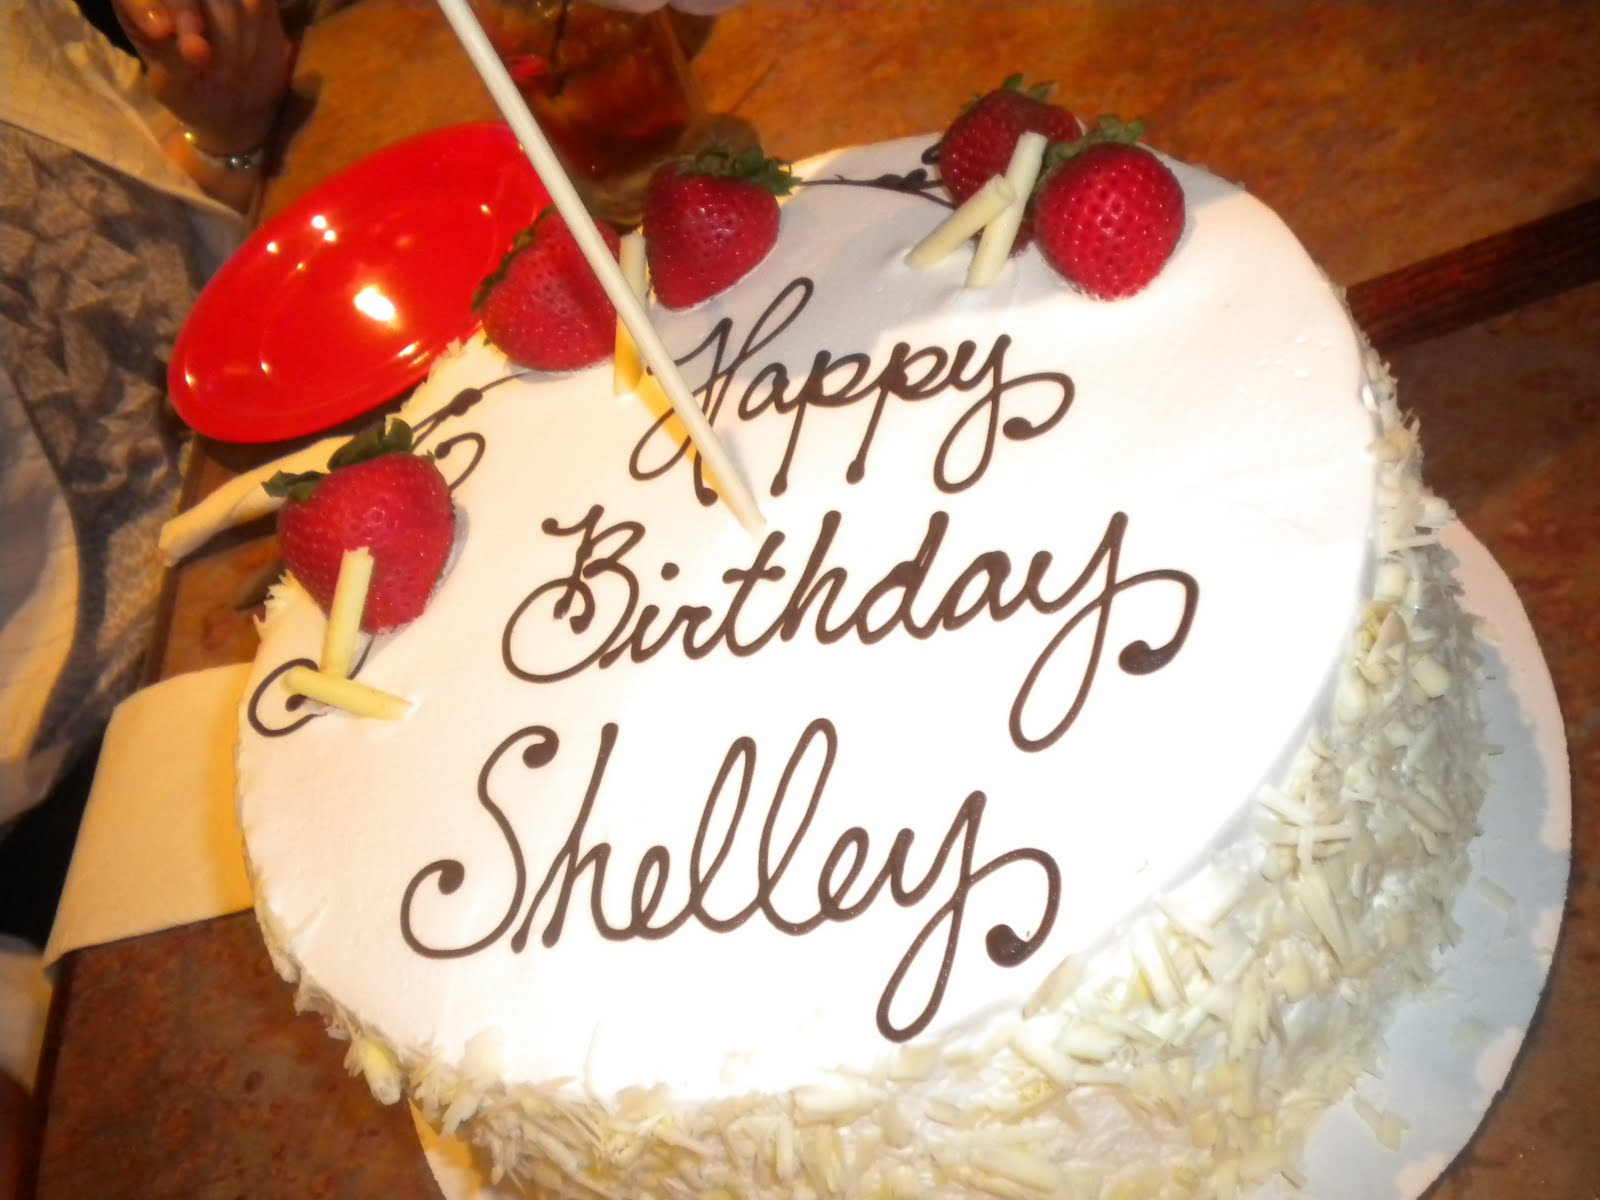 Happy Birthday Shelly Cake Images